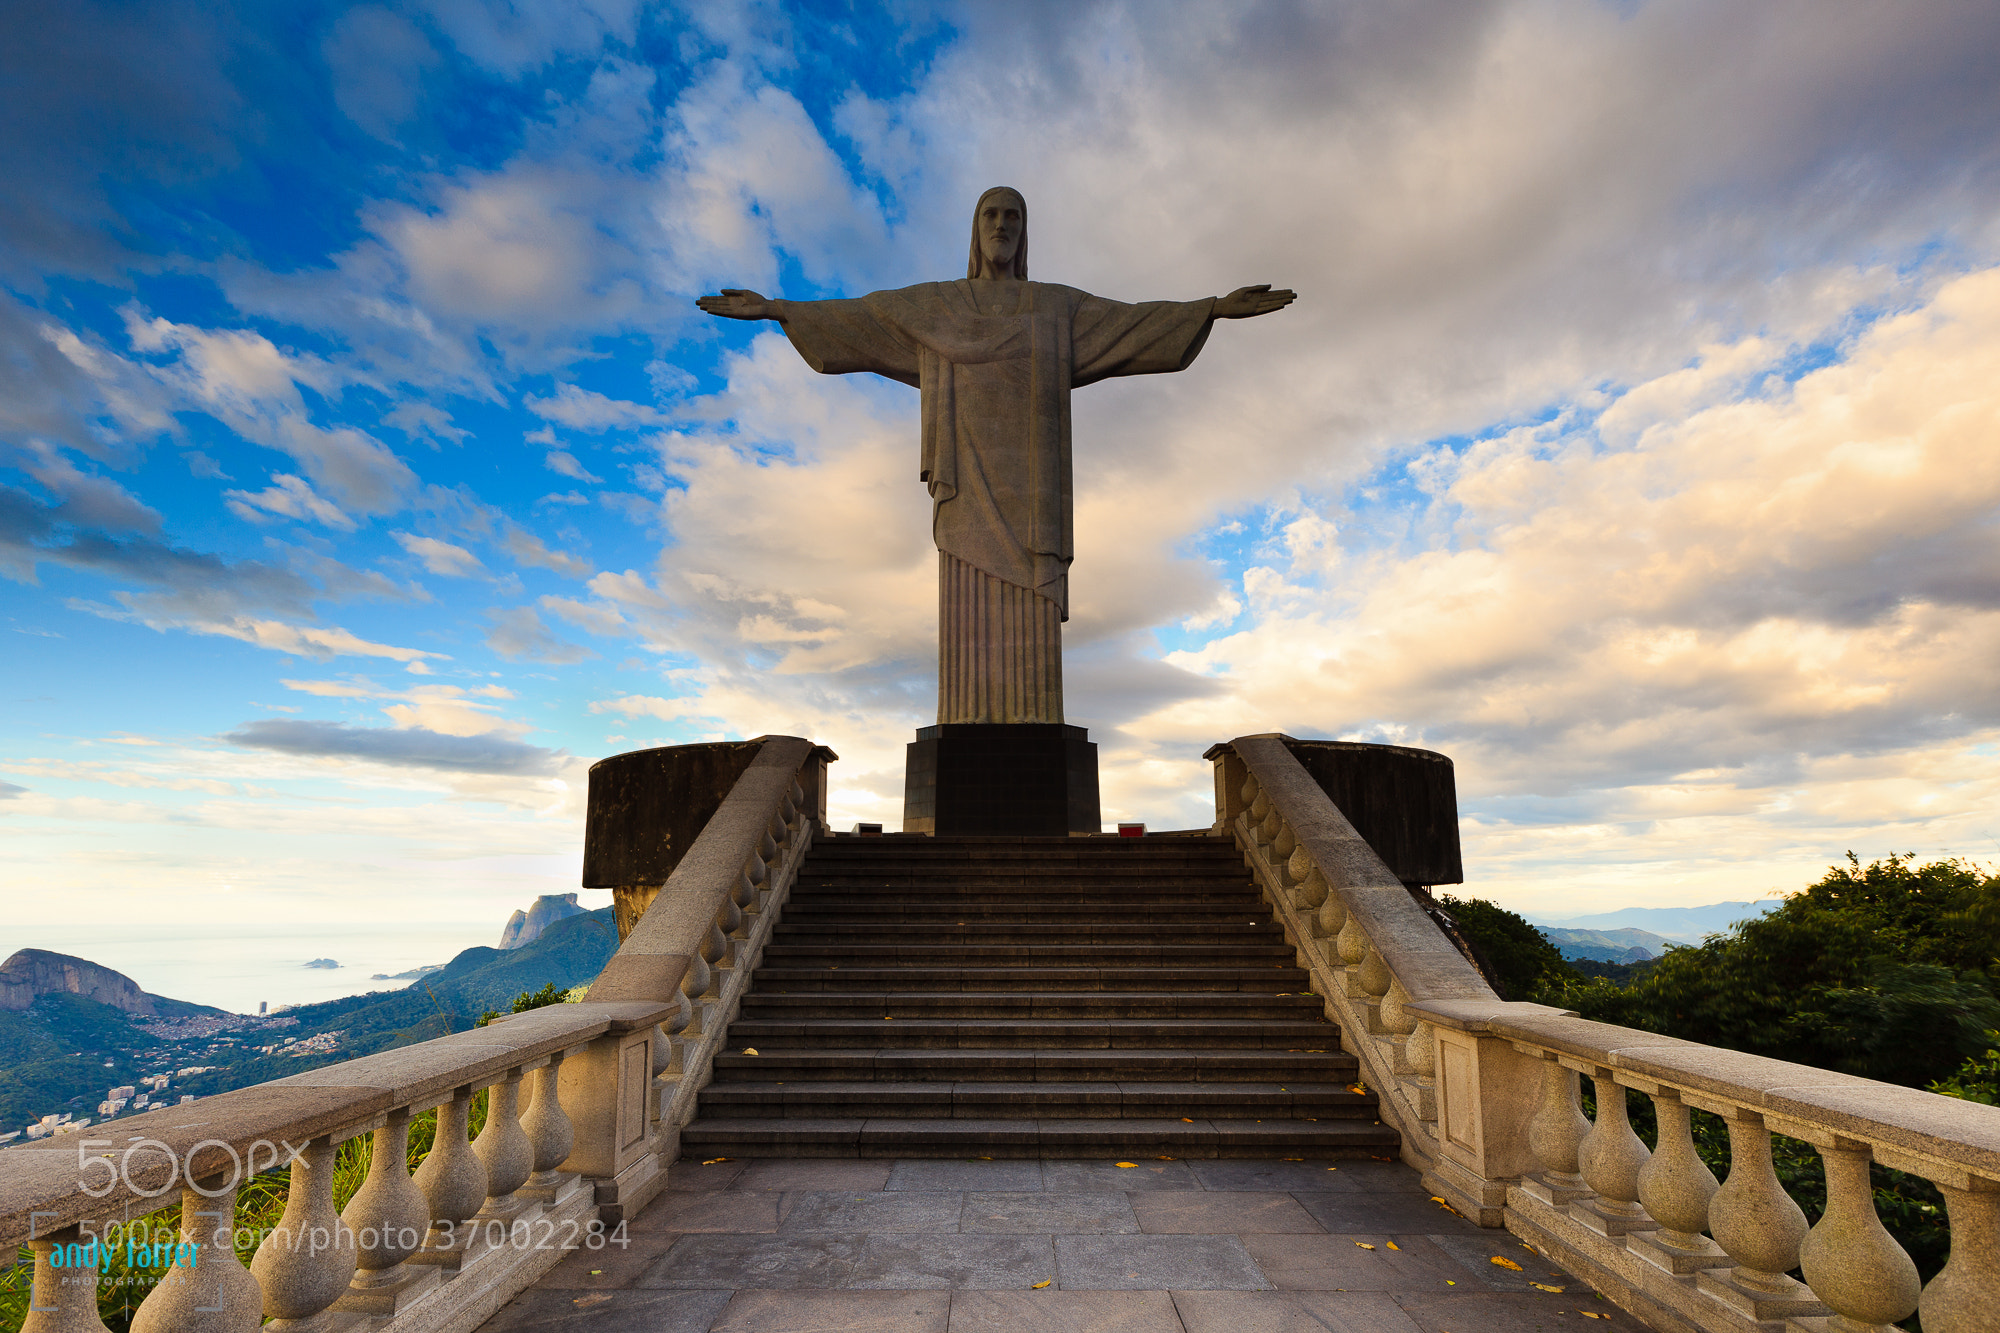 Photograph Christo Redentor by Andy Farrer on 500px